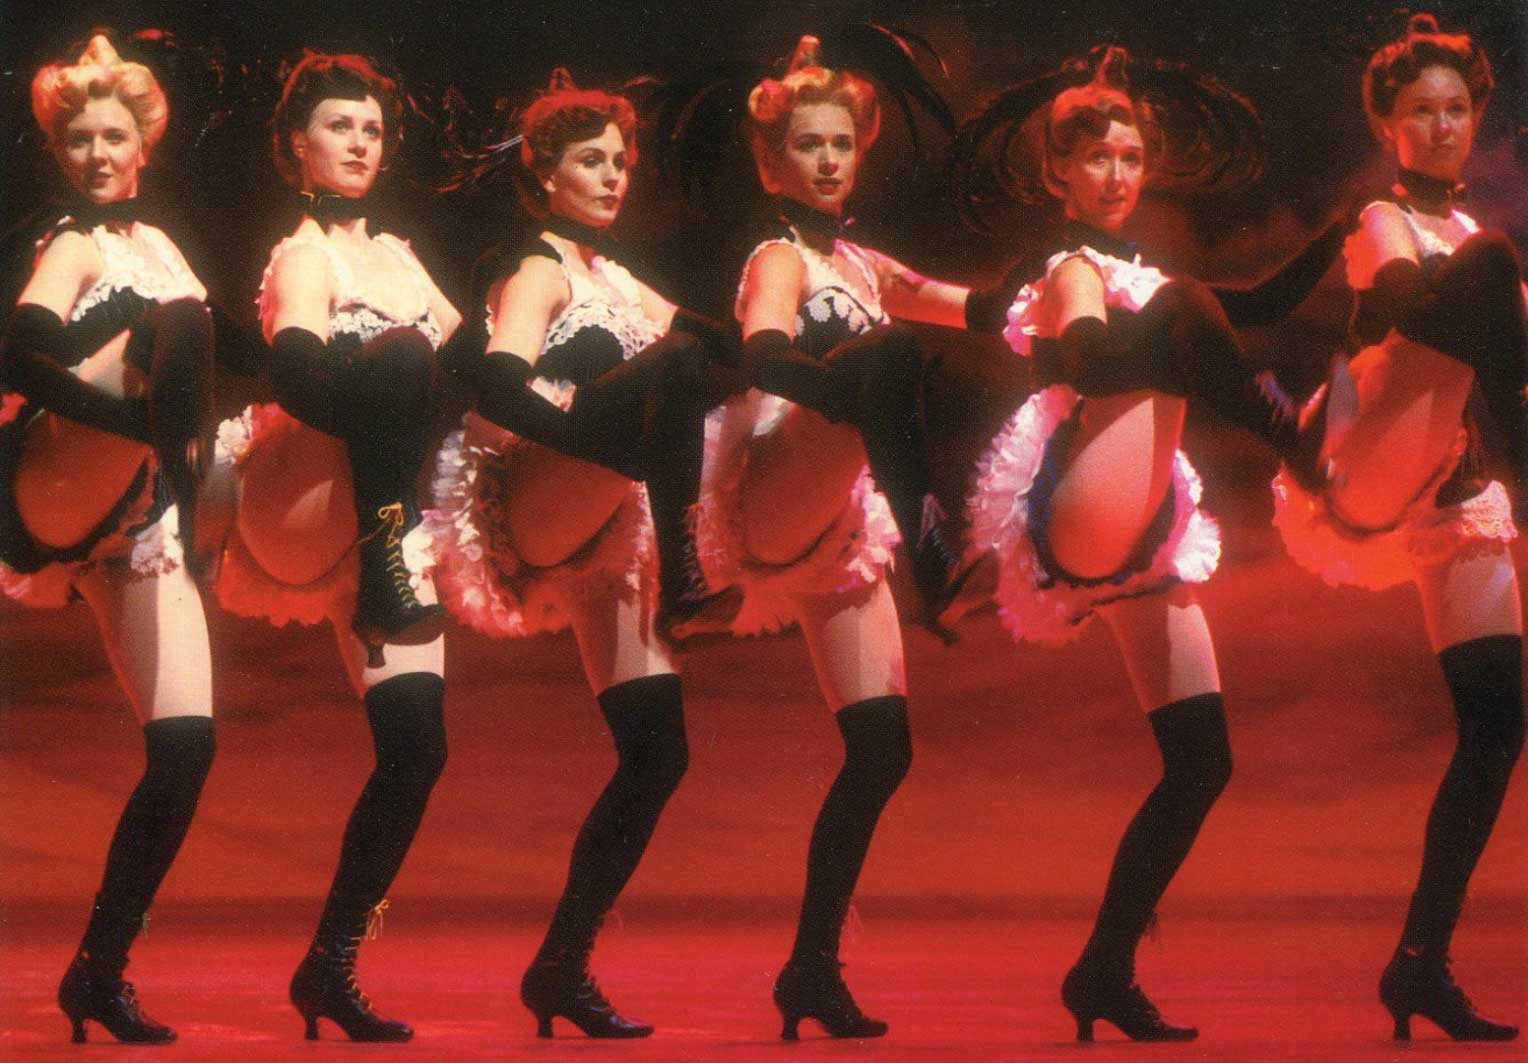 The Dream Ballet Postcard Girls wearing black high boots and white and black lacy outfits, doing a can can dance.